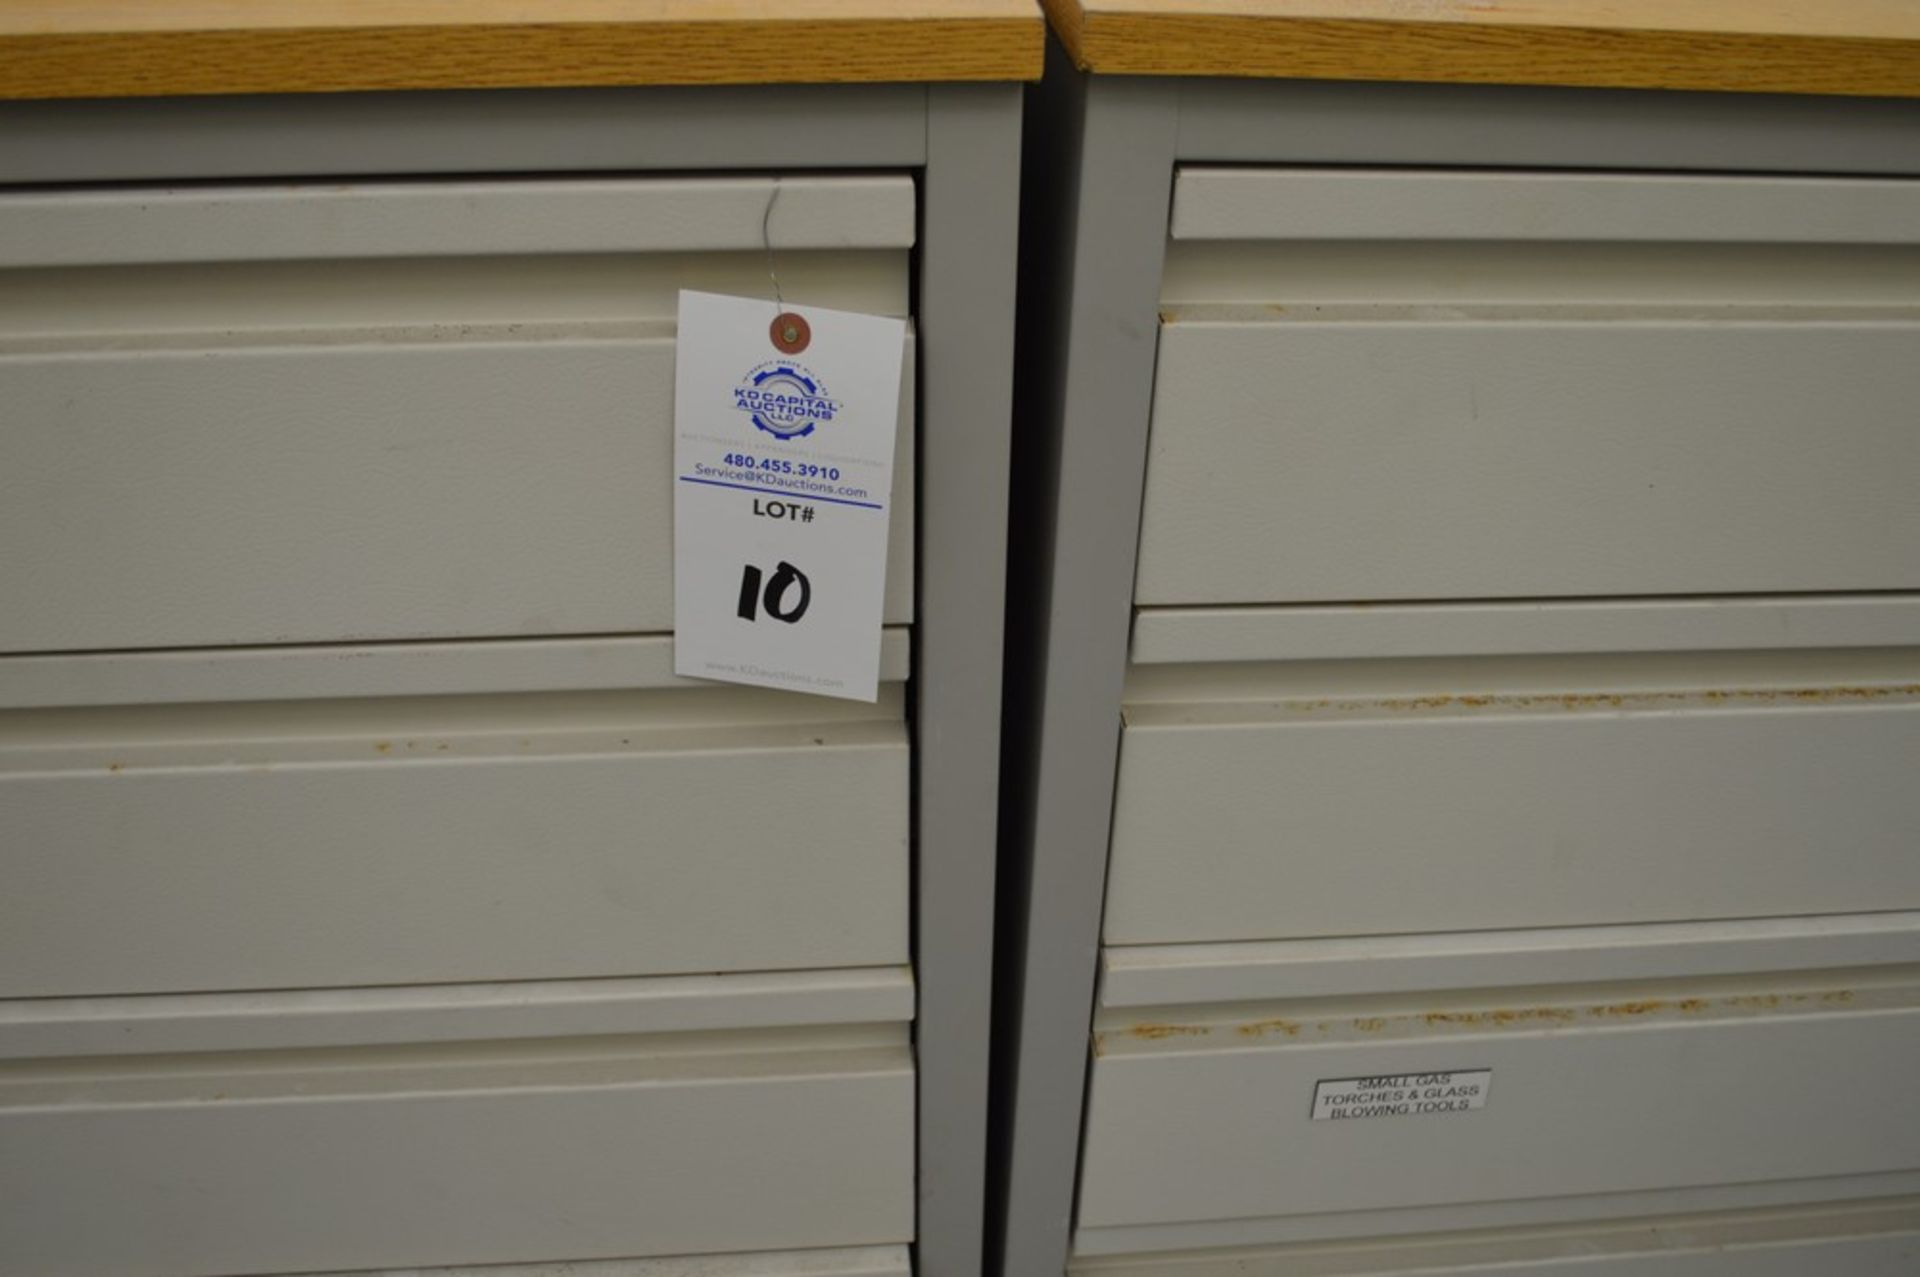 """(3) 4 Drawer Metal Cabinets with wood finished formica tops, 24"""" x 30.5"""", 36.5"""" Tall - Image 4 of 5"""